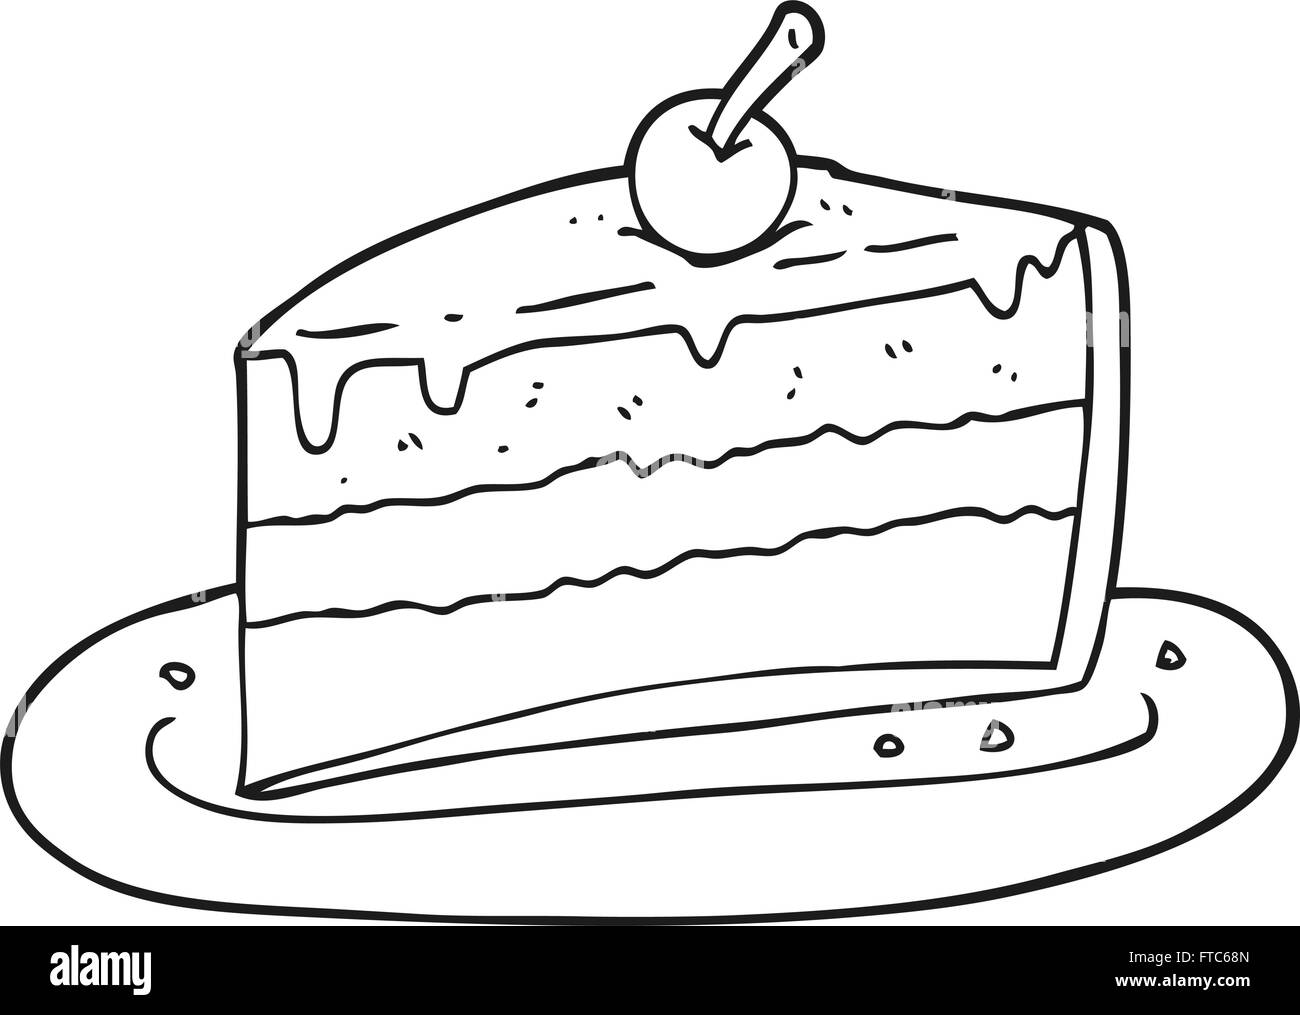 hight resolution of freehand drawn black and white cartoon slice of cake